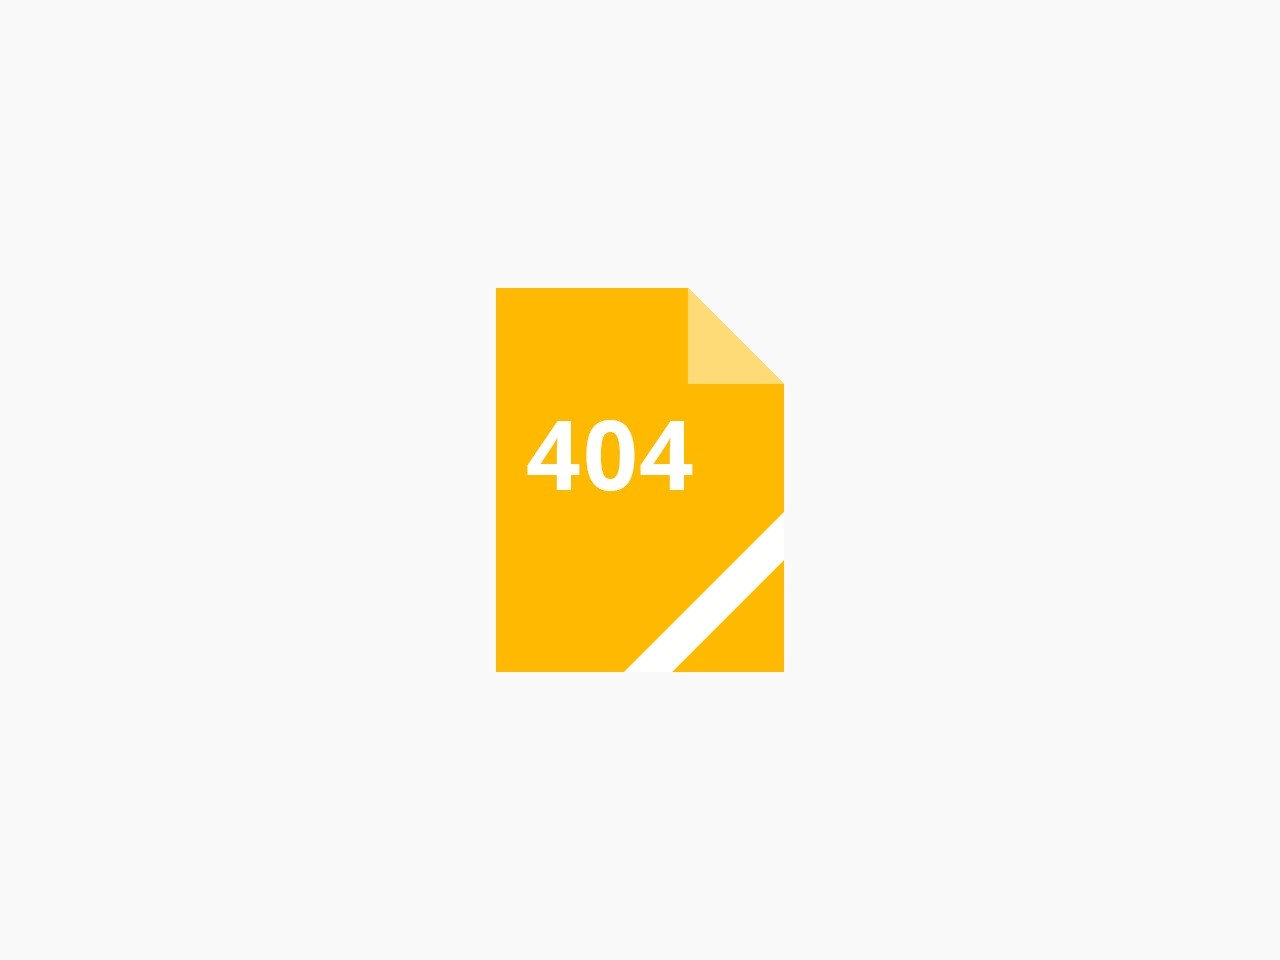 Things To Do In The Palm Beach